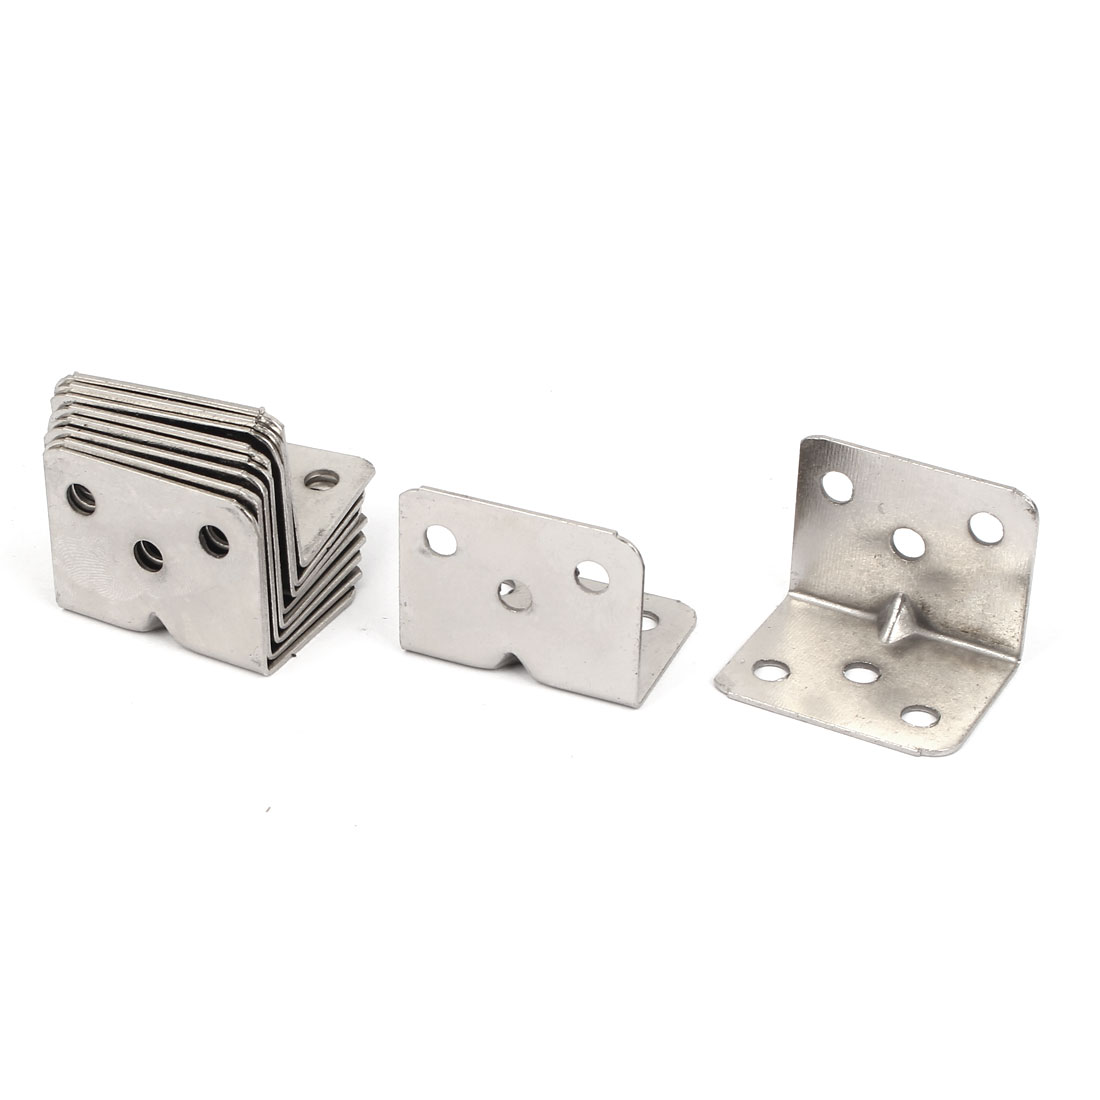 10pcs 28mmx28mm Stainless Steel Corner Brace Right Angle Bracket 1mm Thickness